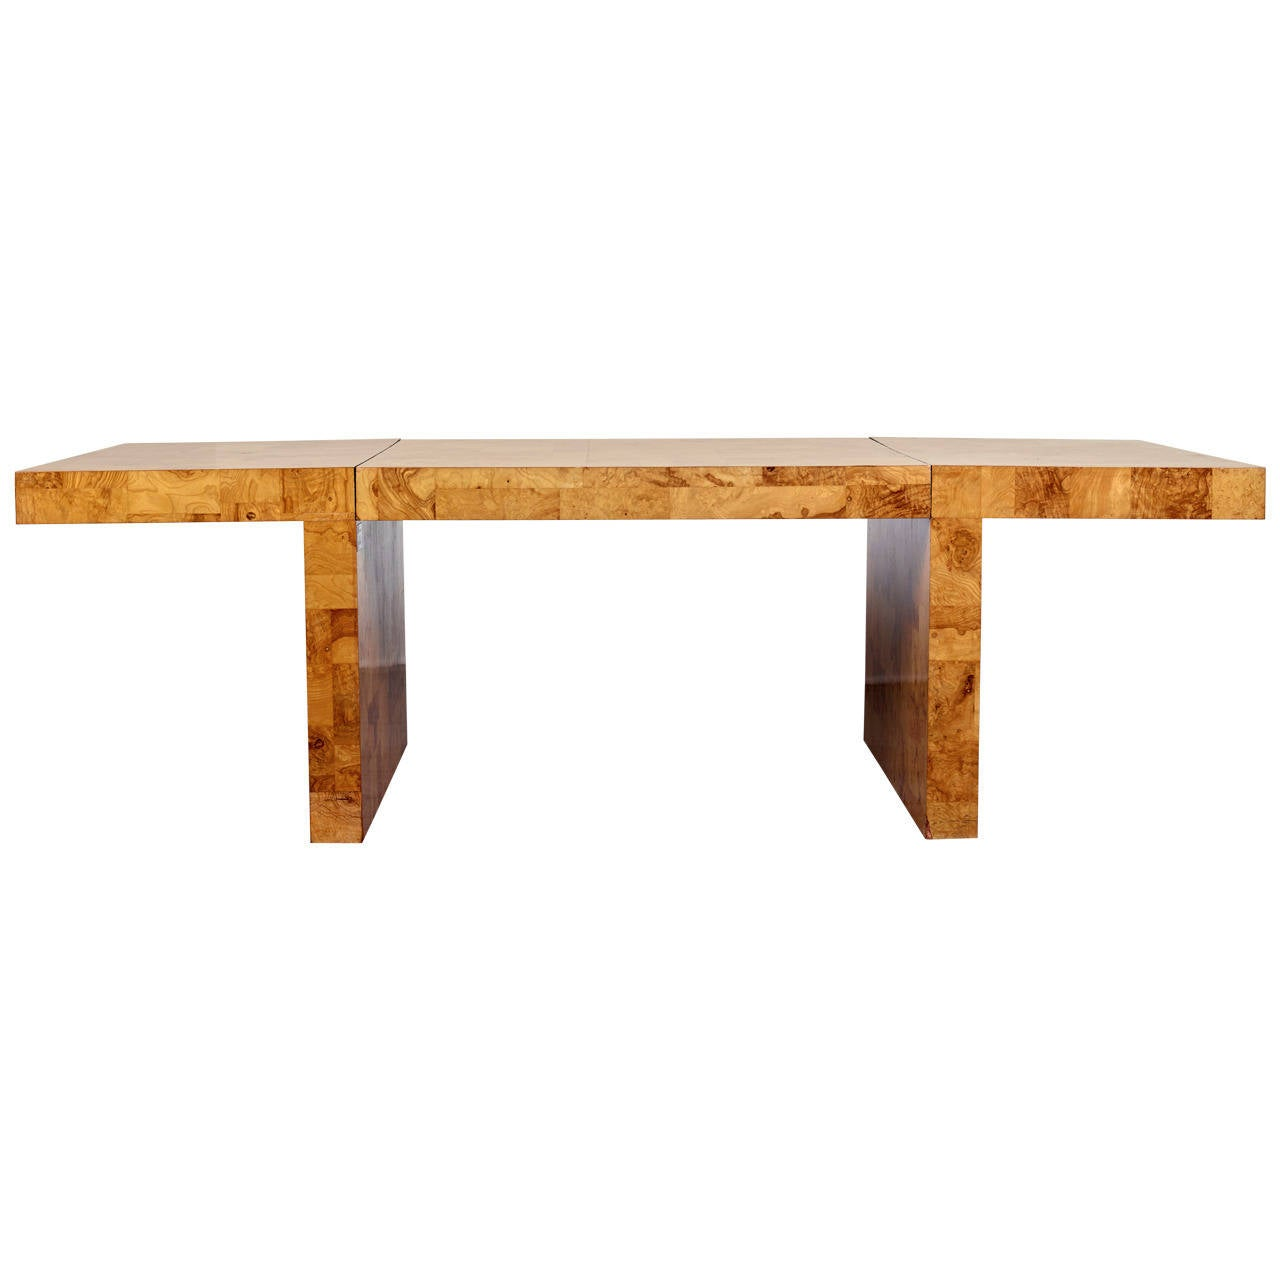 Paul Evans Dining Table for Directional, Olive Ash Burl, 1970s